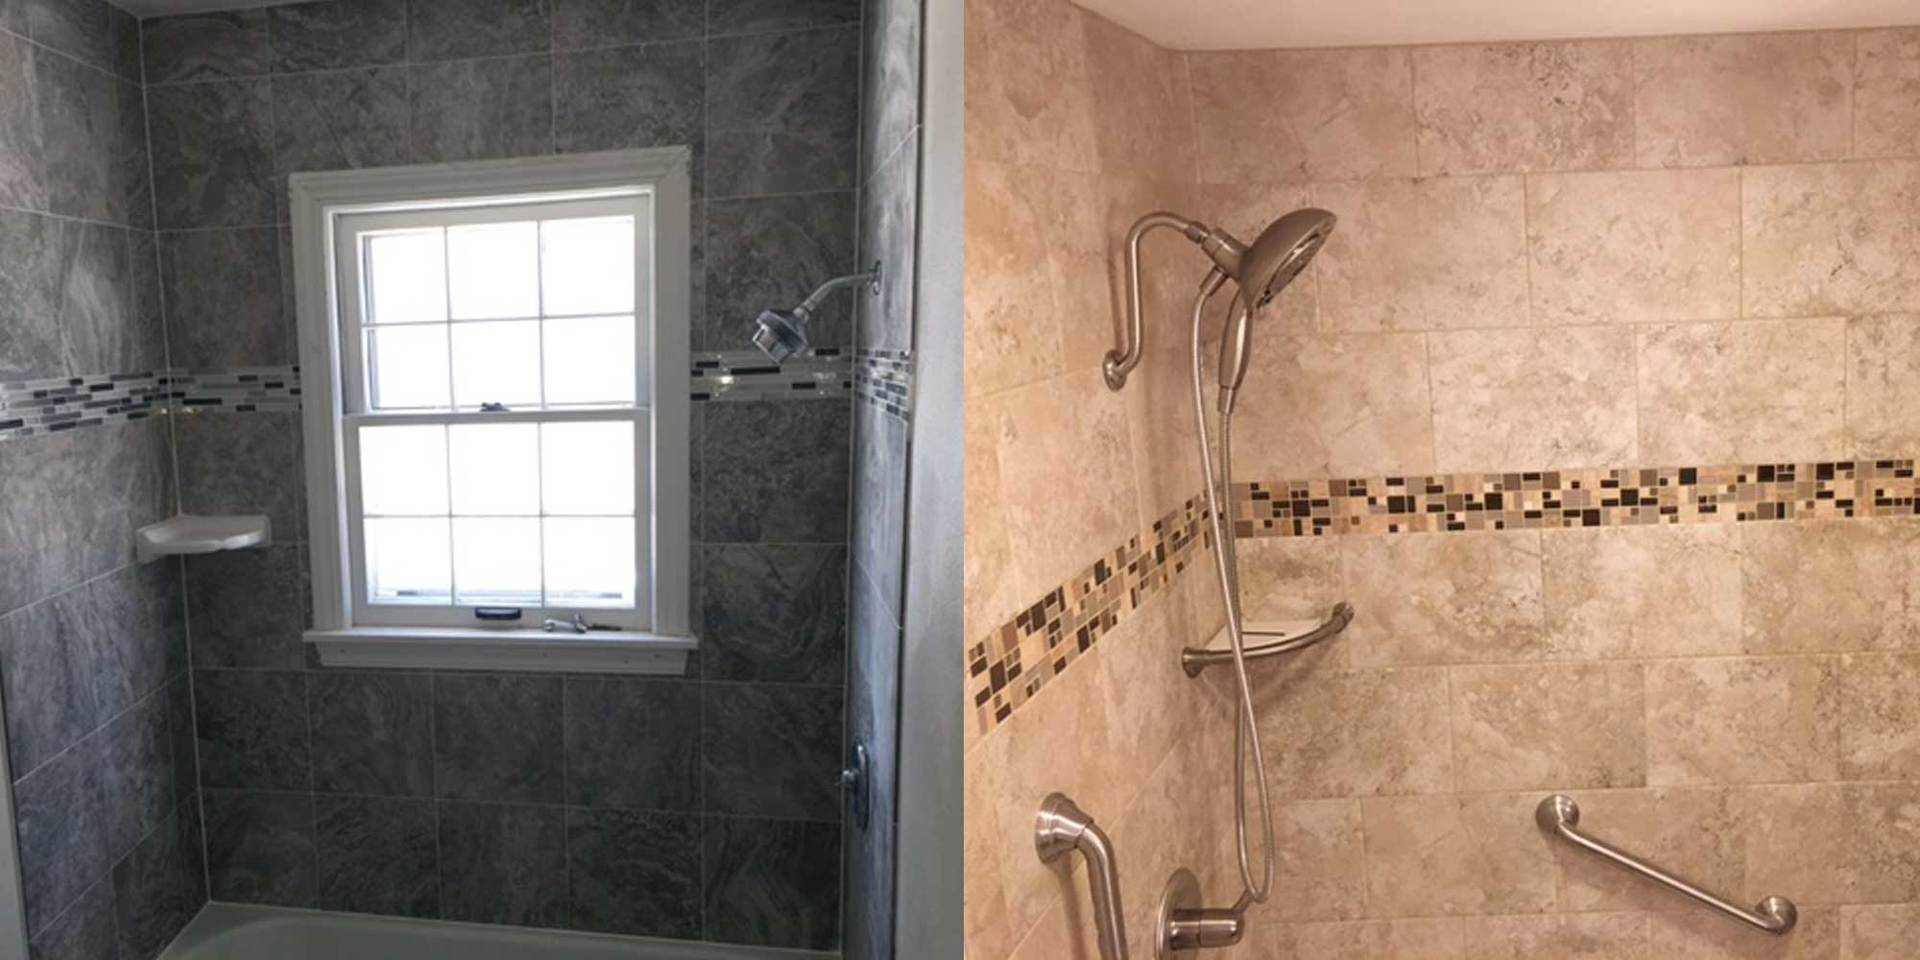 Home Remodeling Contractor Kitchen Bathroom Appleton Neenah - Bathroom remodel appleton wi